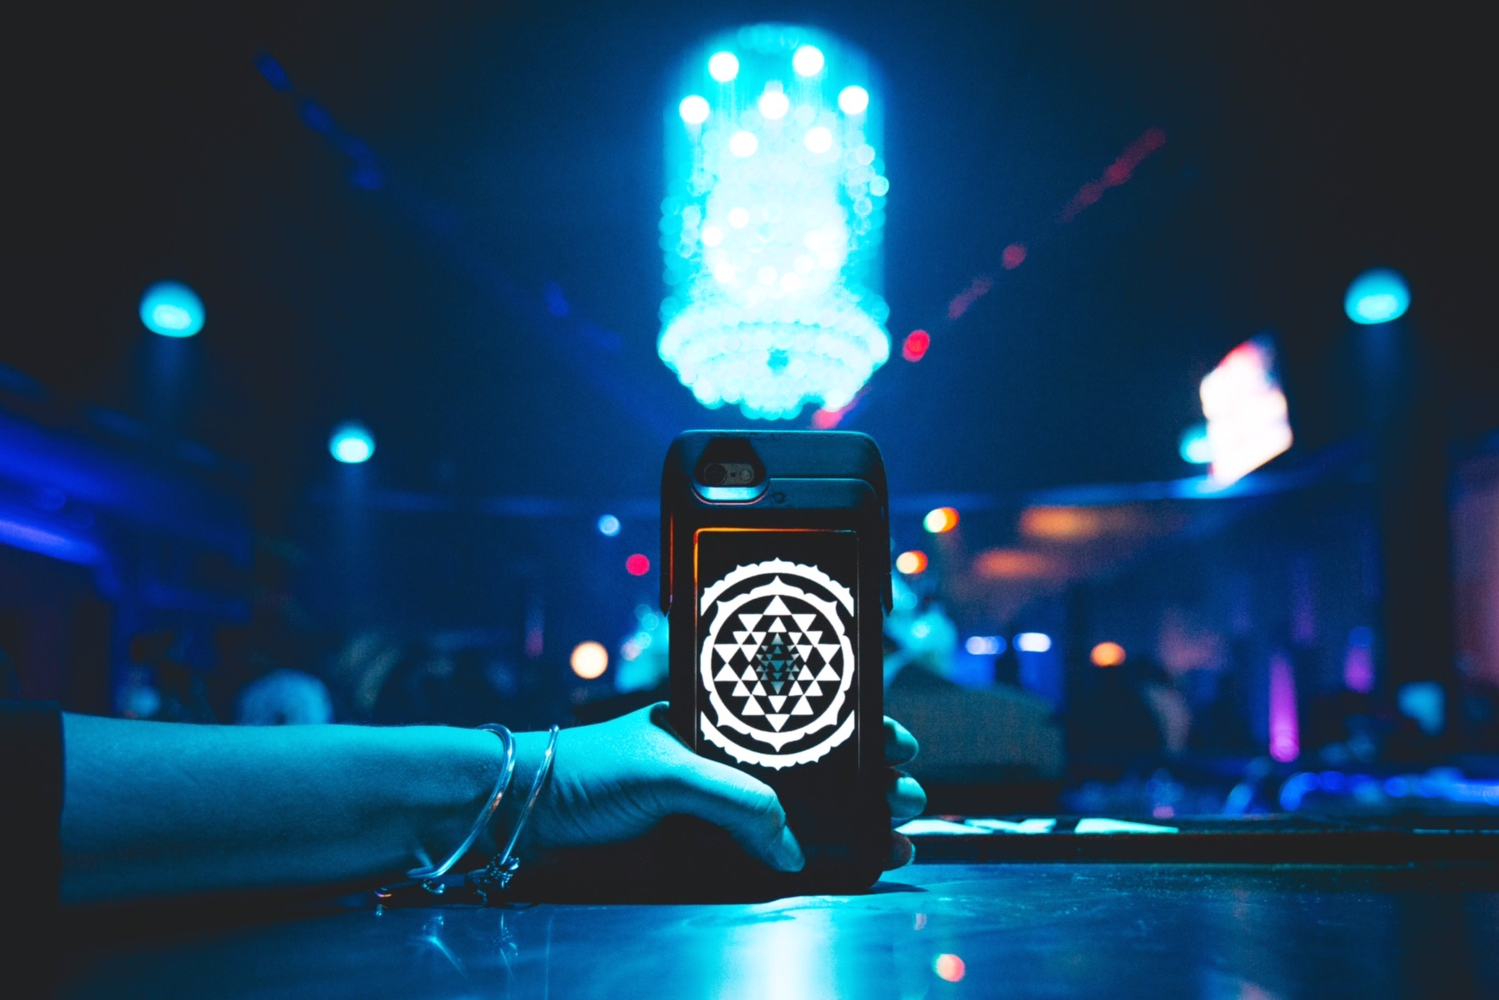 This Phone Case Lights Up In Time To Music Ready To Annoy